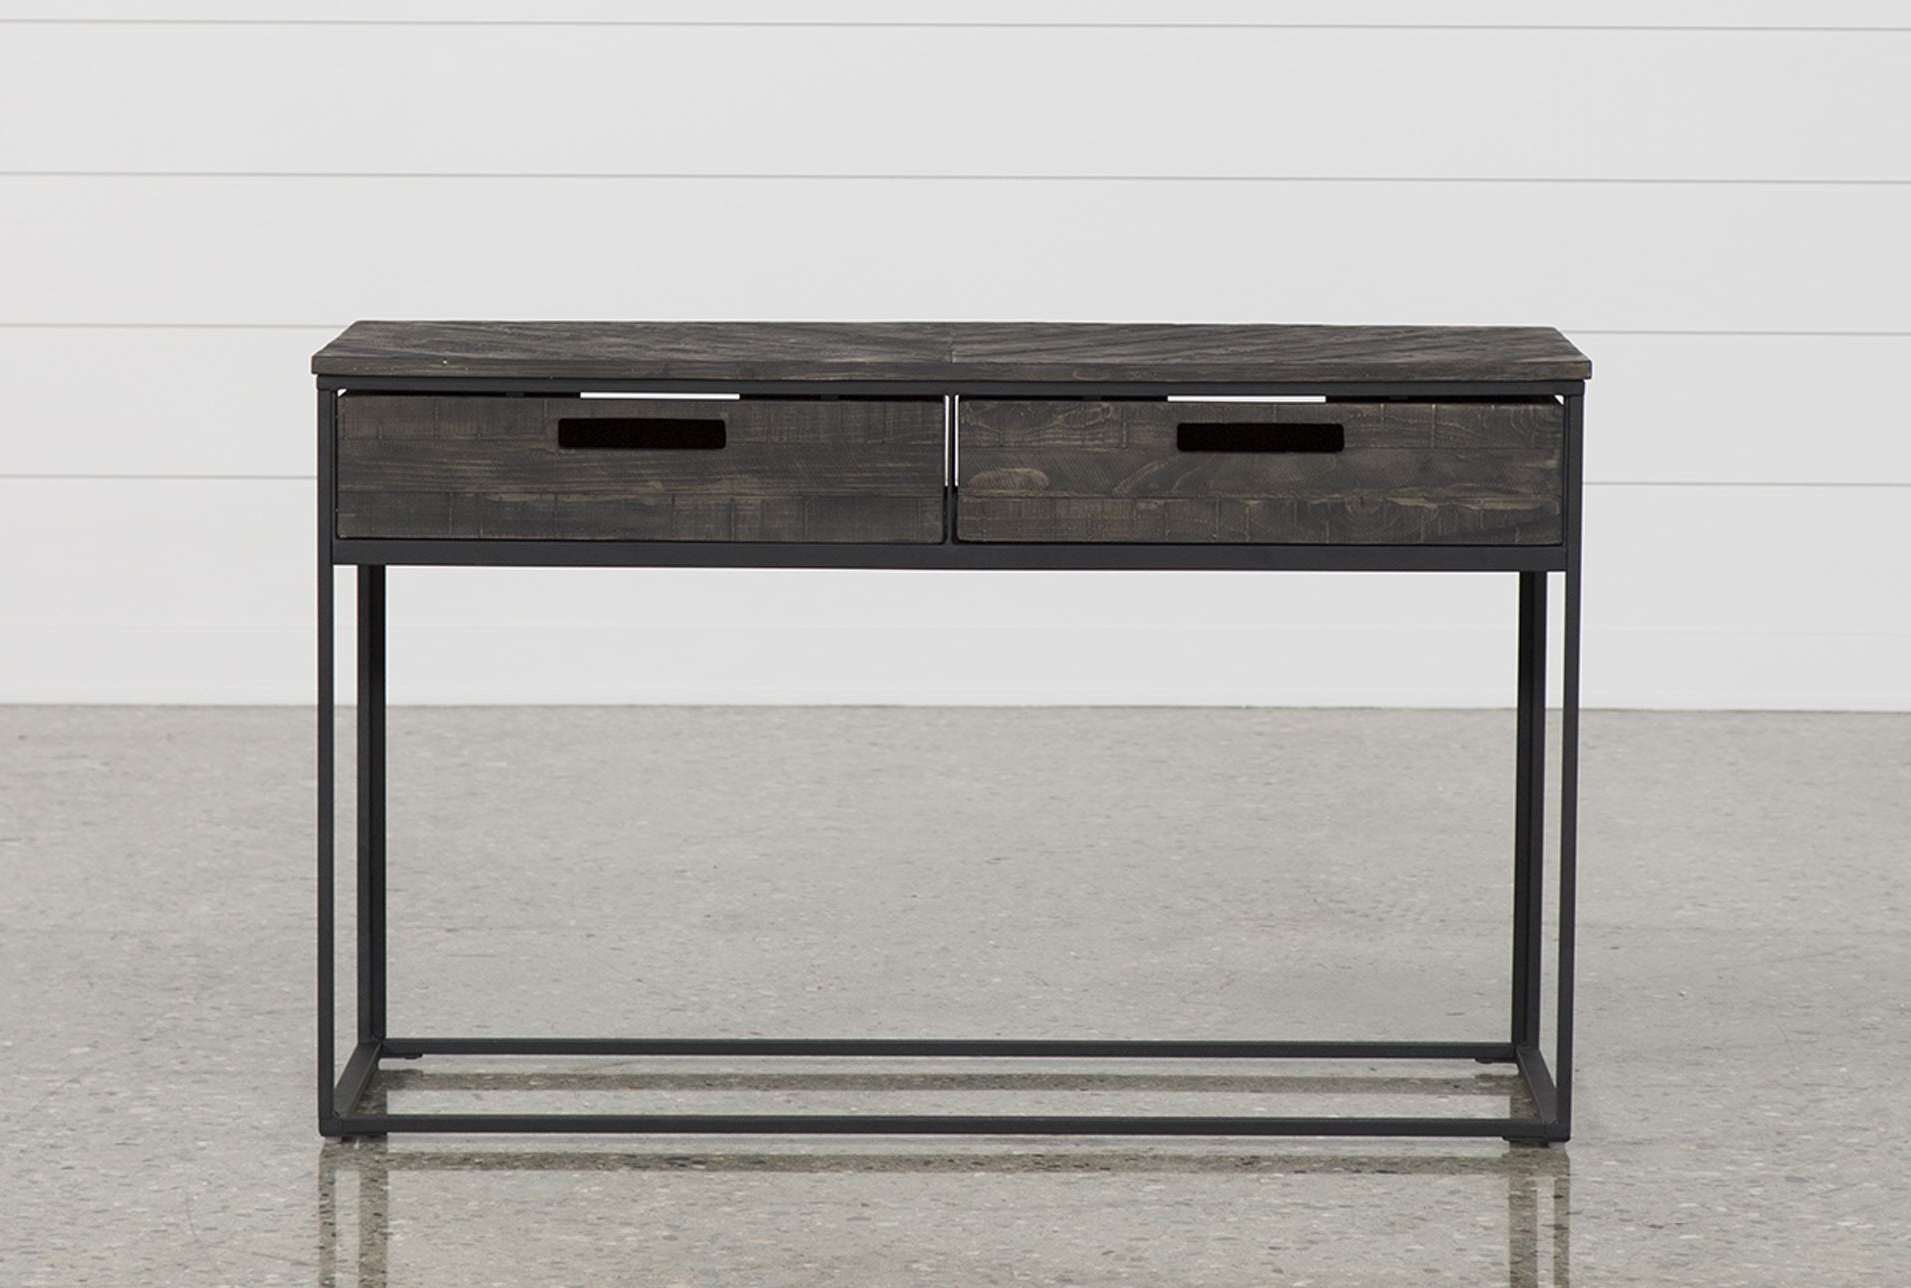 Sofa Table: Luxurious Sofa Table Desk Ideas Console Tables Ikea Within Parsons Grey Solid Surface Top & Elm Base 48x16 Console Tables (View 16 of 20)